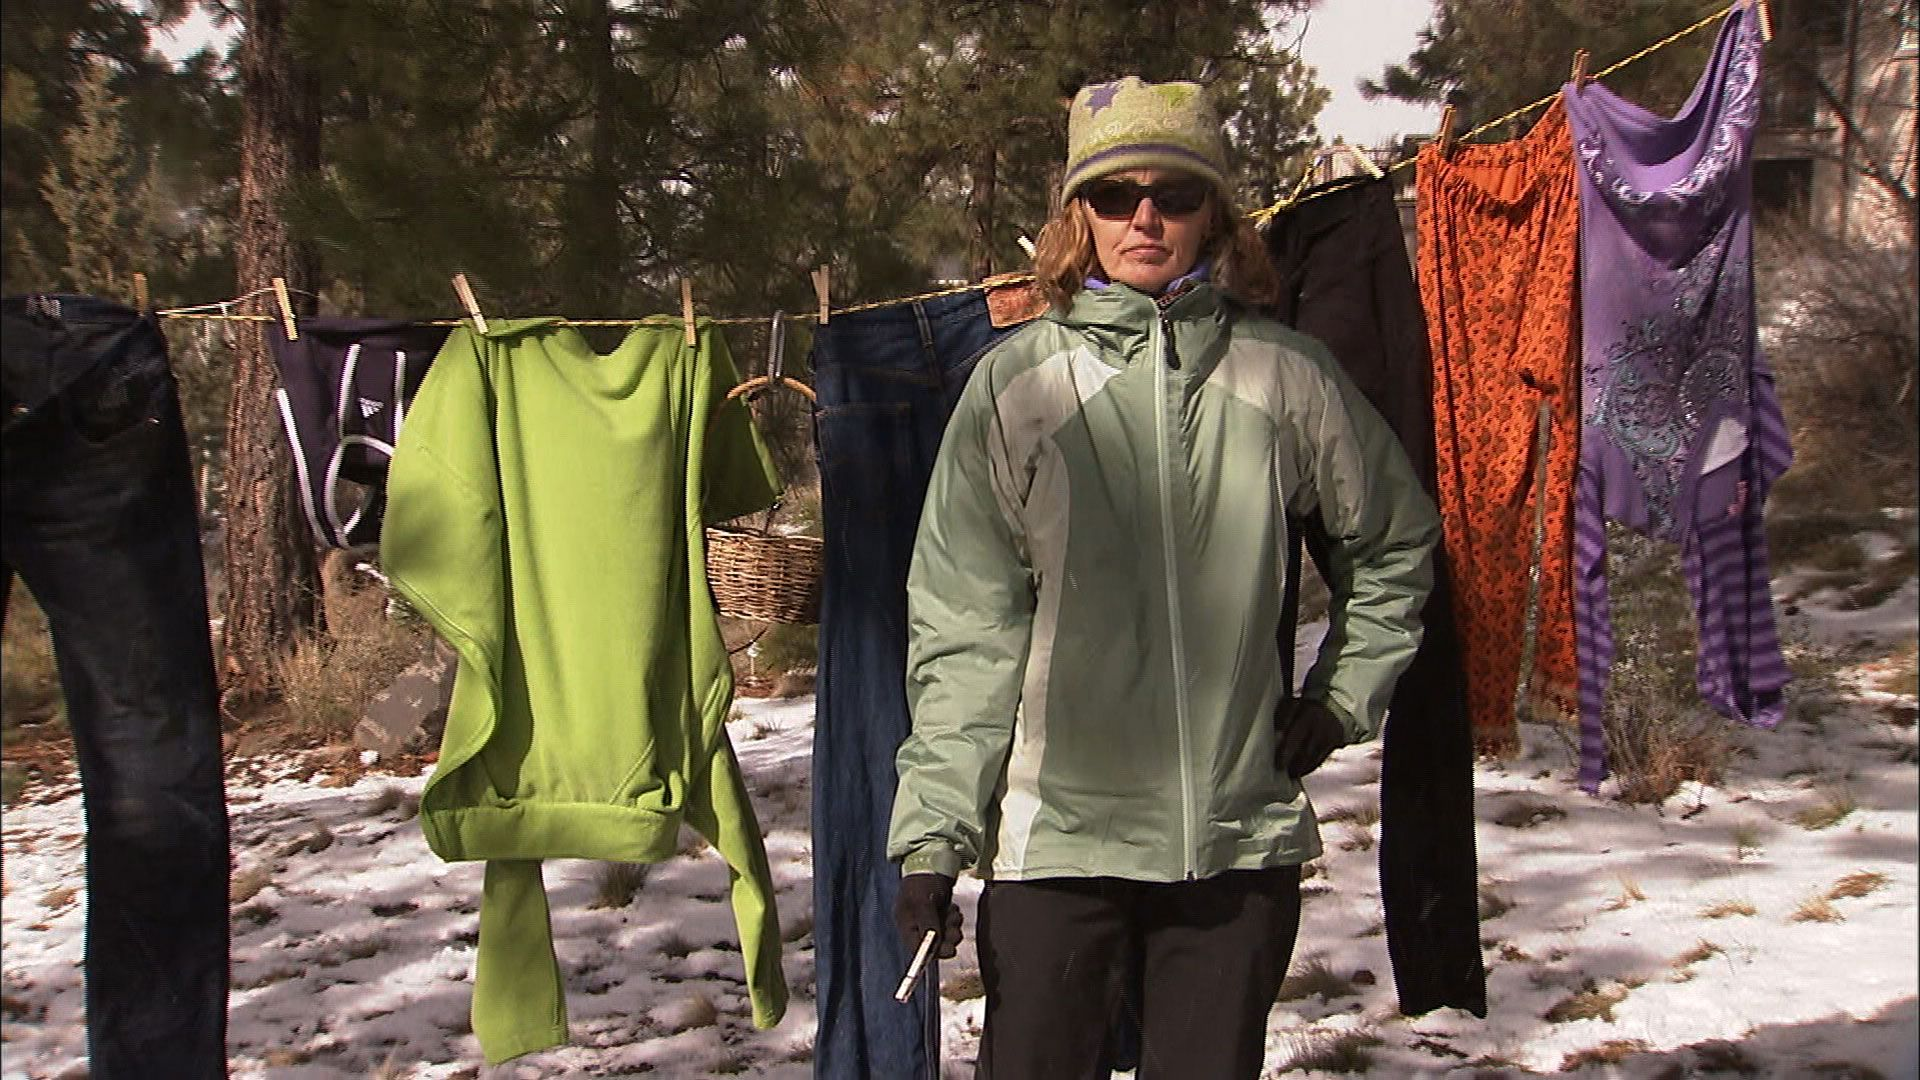 the enemy within backyard clothesline the colbert report